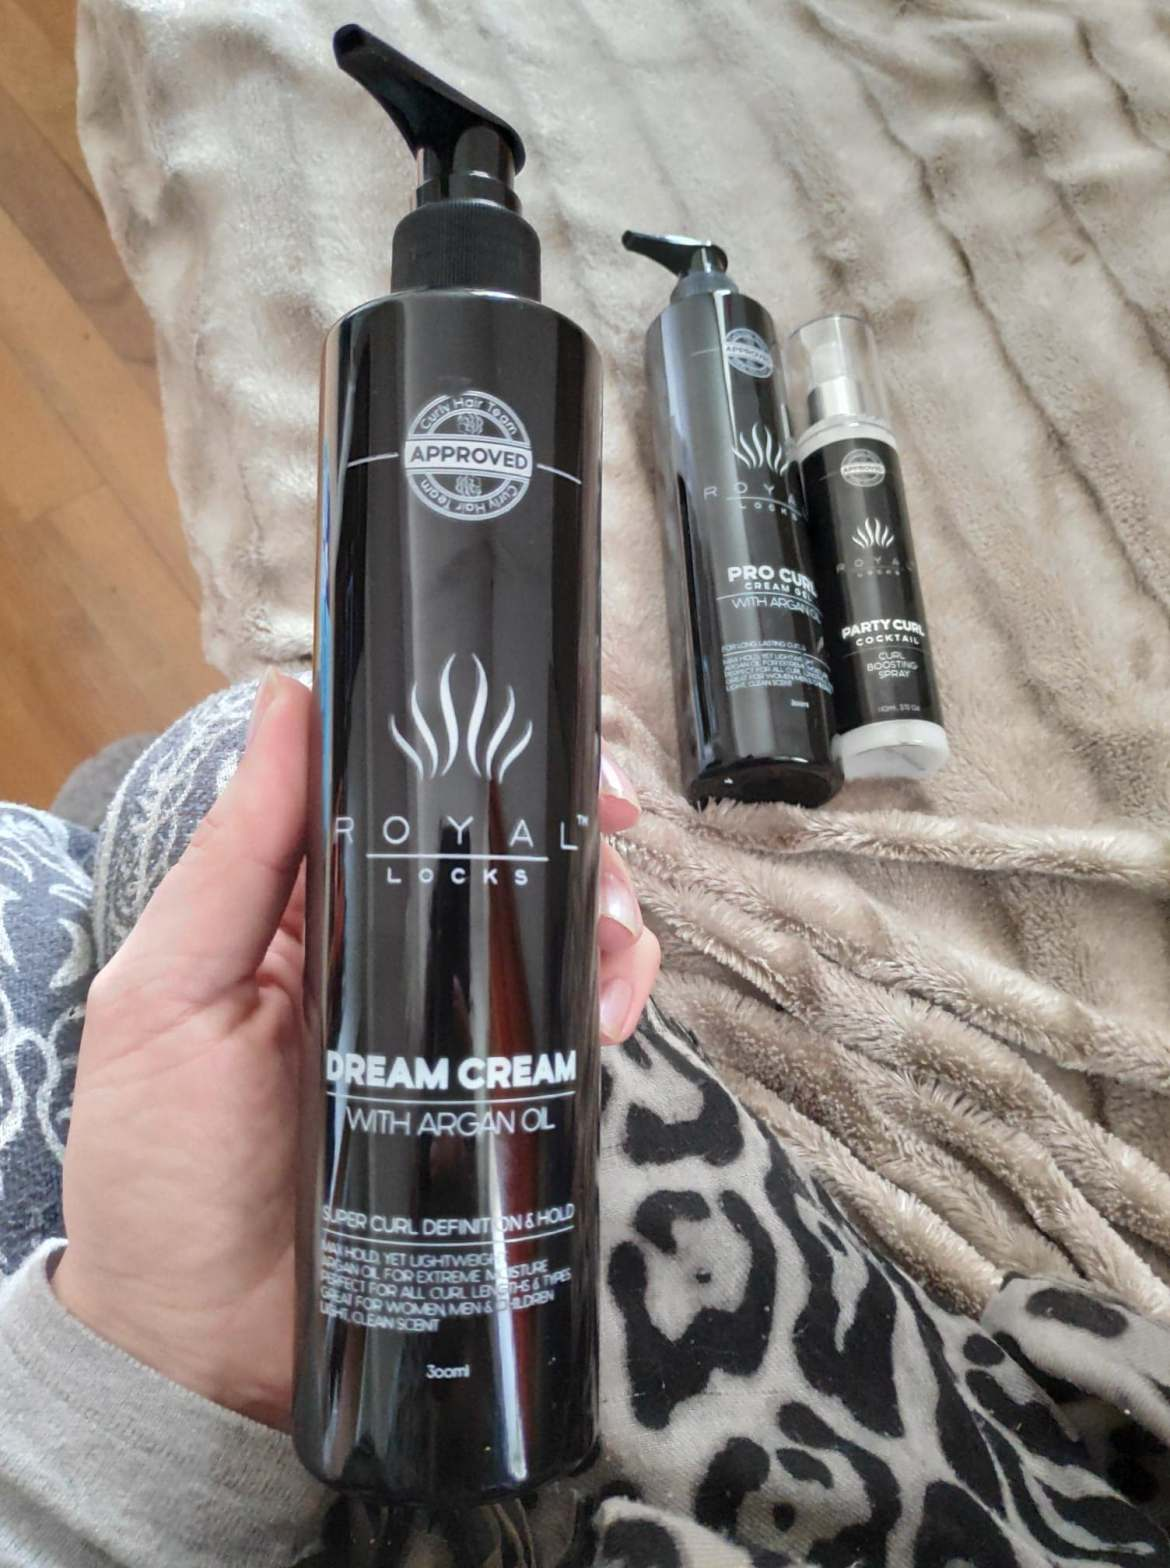 ROYAL LOCKS DREAM CREAM